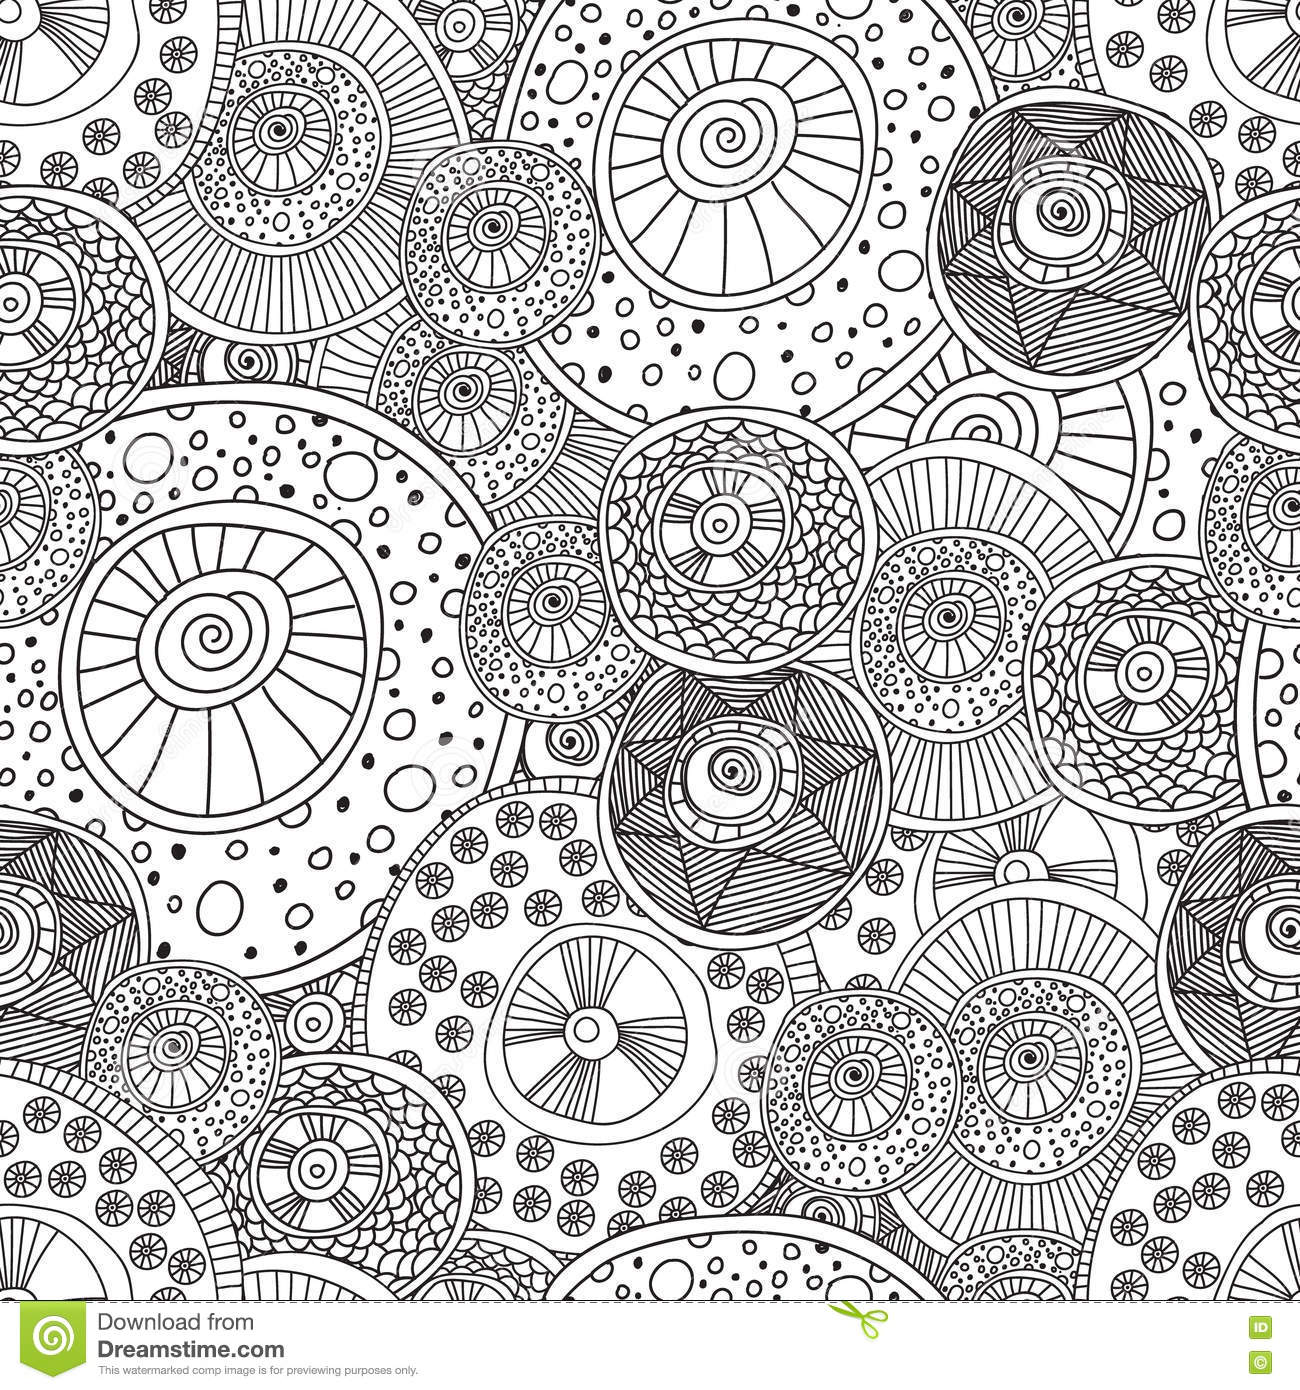 Coloring Pages For Adults Book.Seamless Black And White